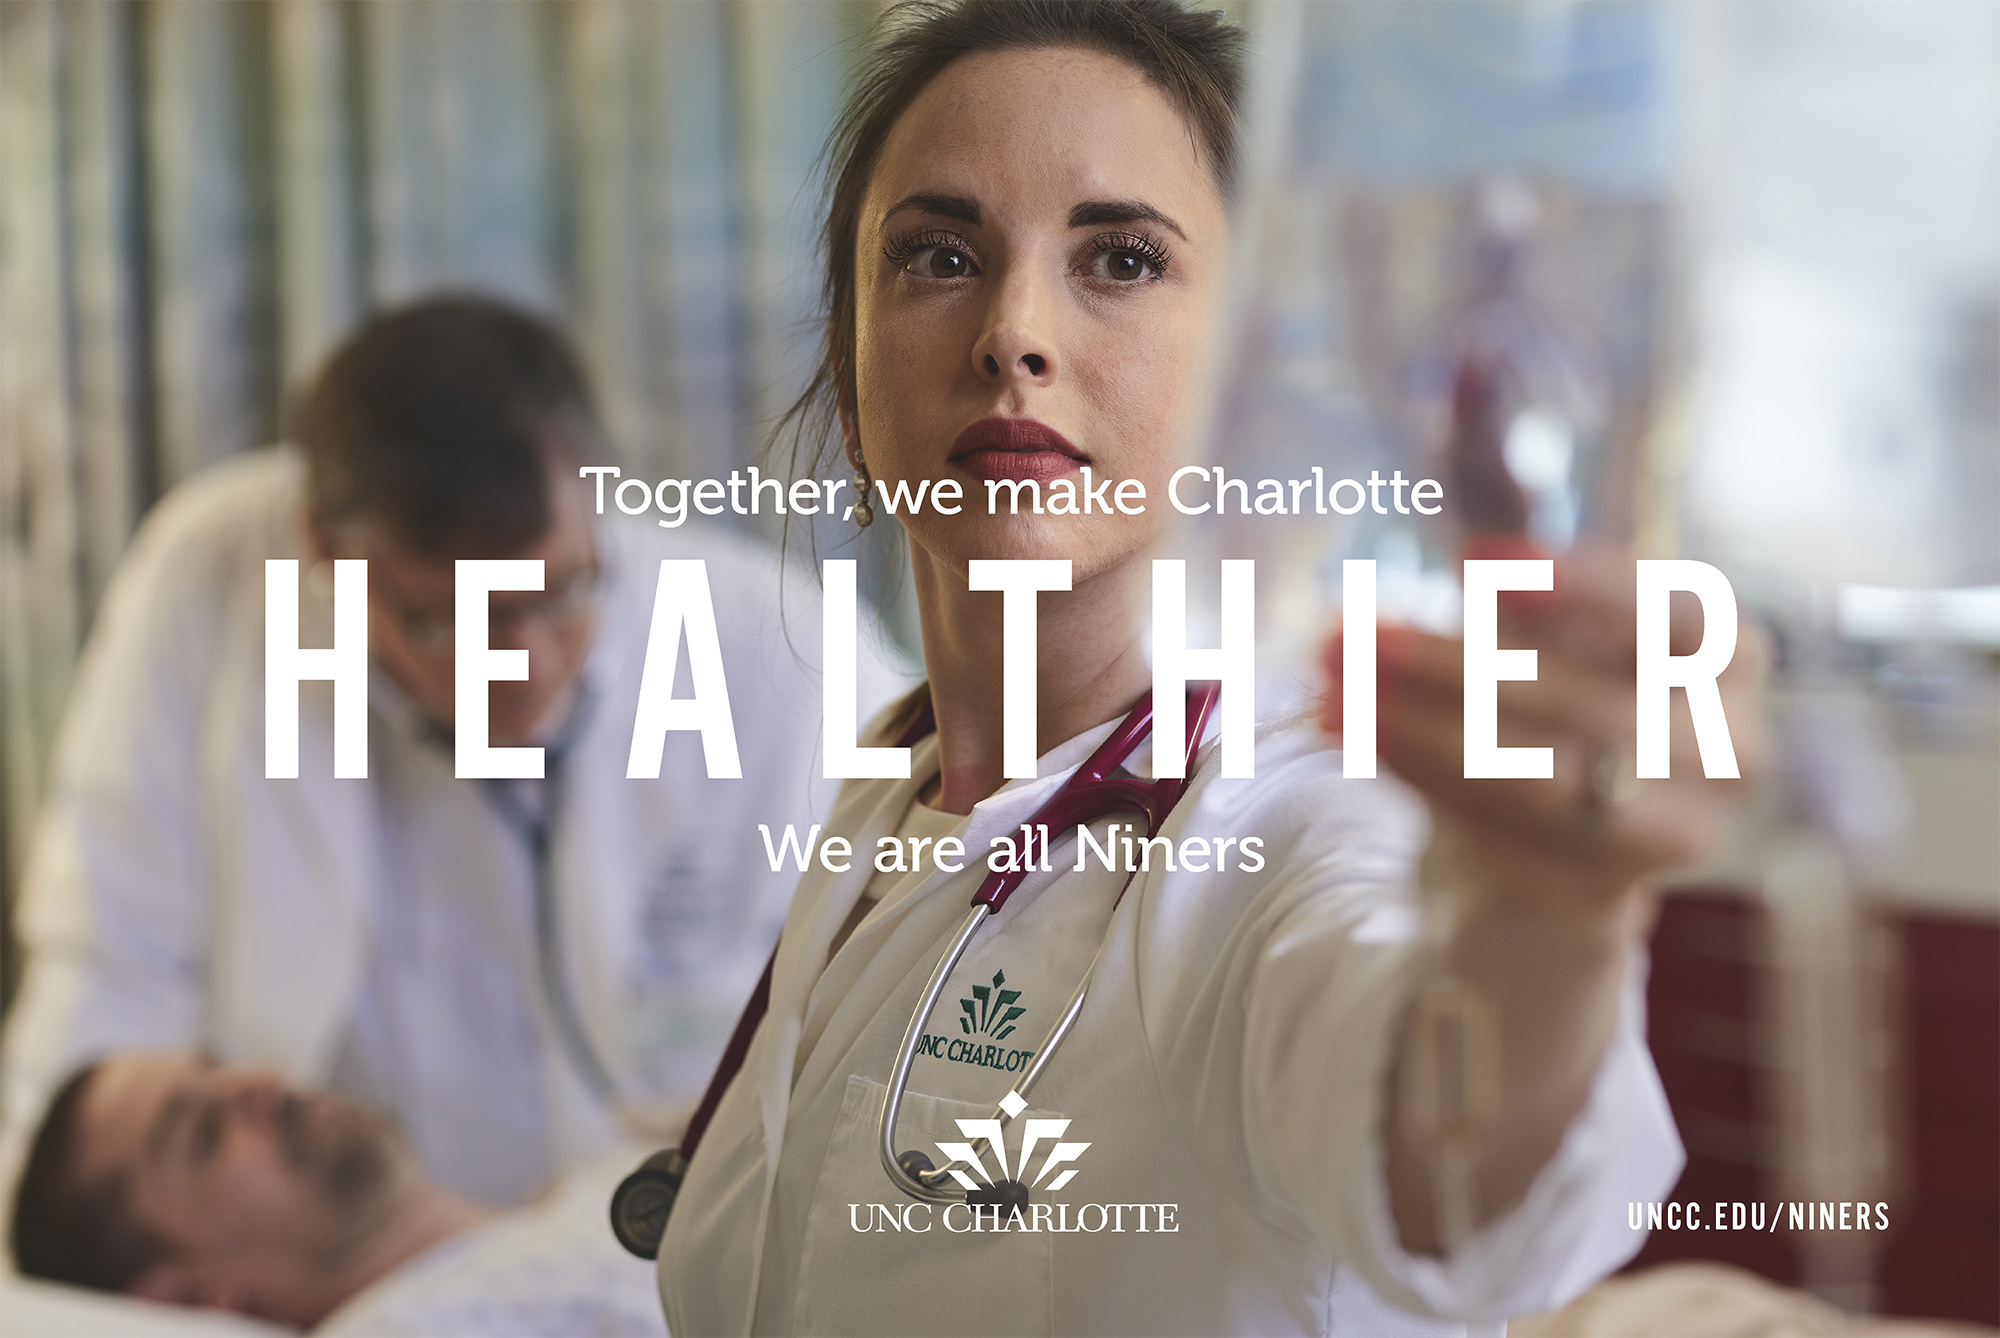 Together, we make Charlotte HEALTHIER.